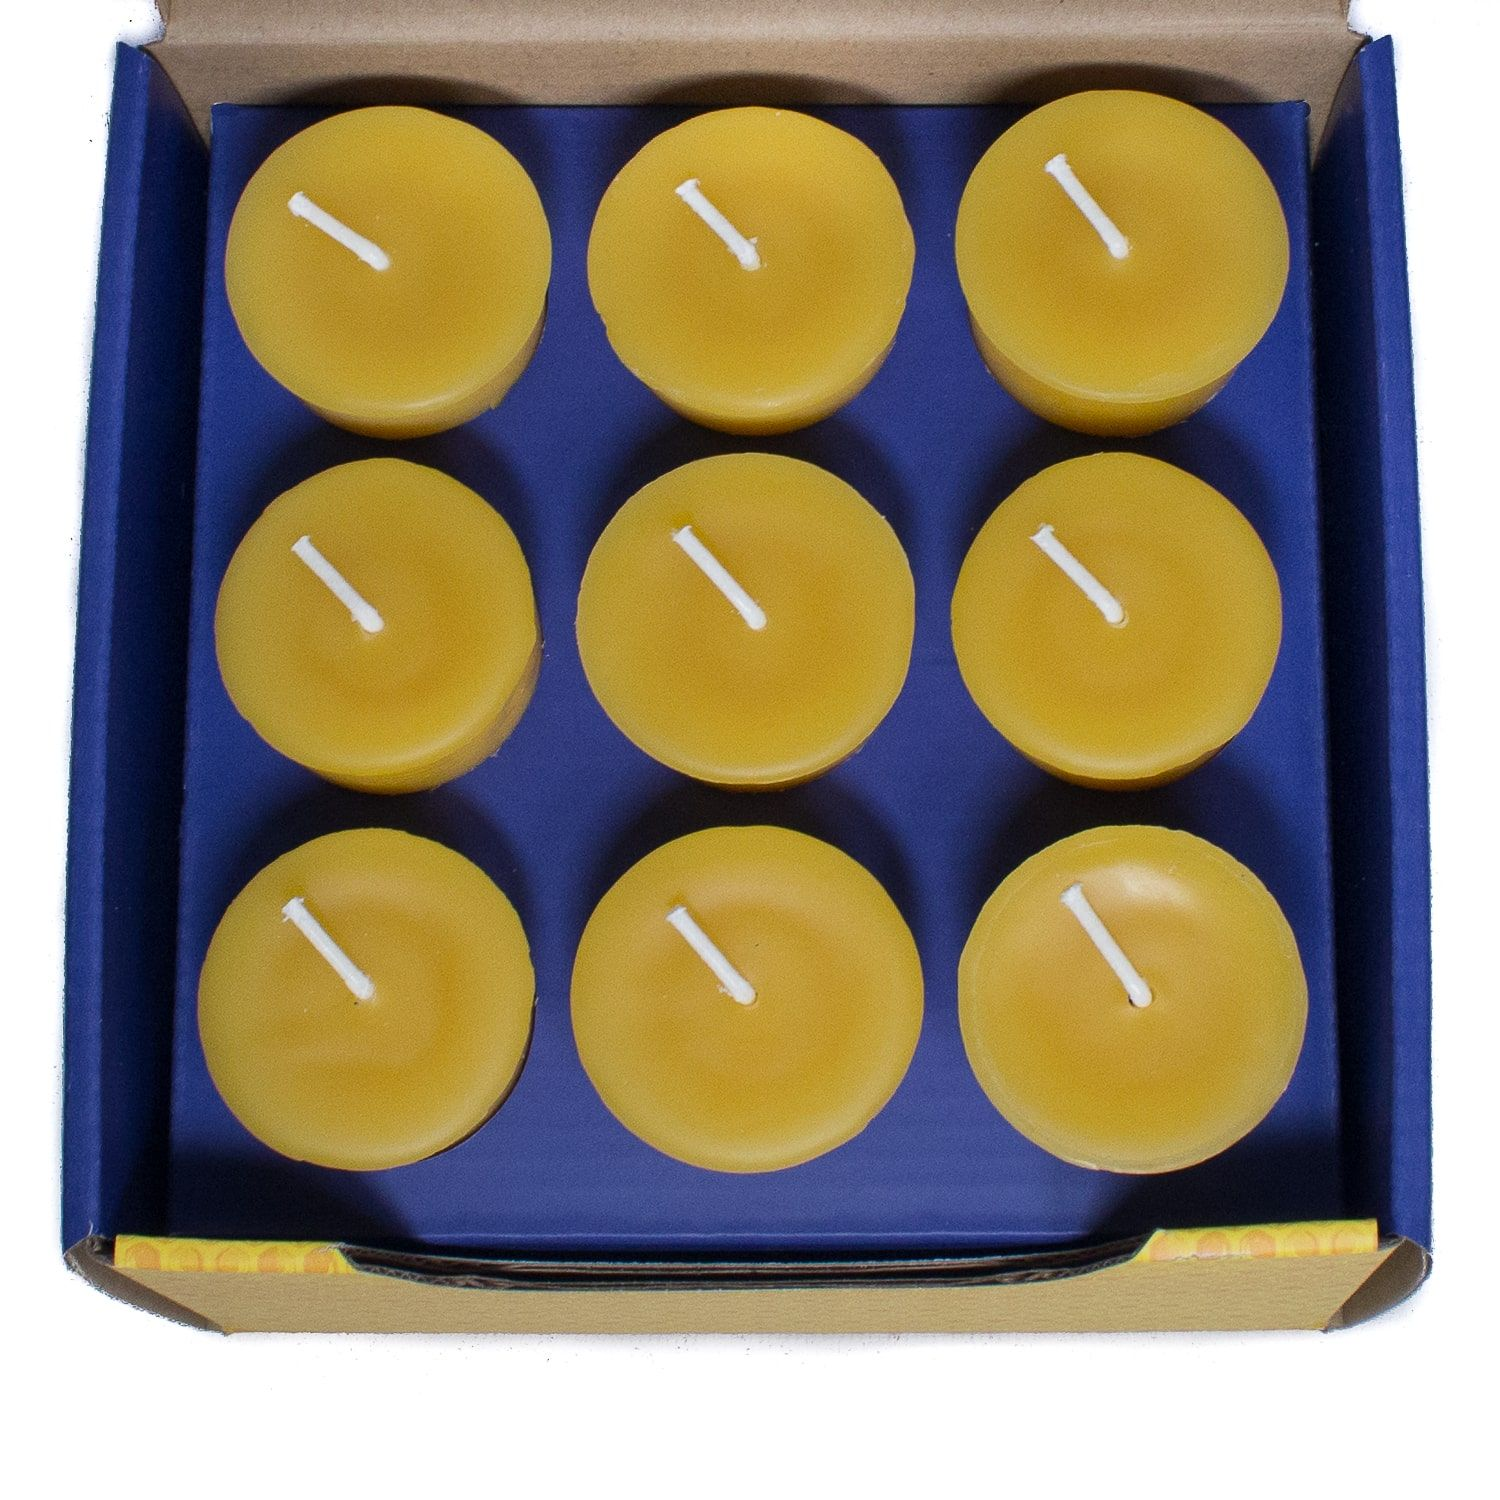 Bluecorn Beeswax Mailer Box with Custom Box Inserts for Candles